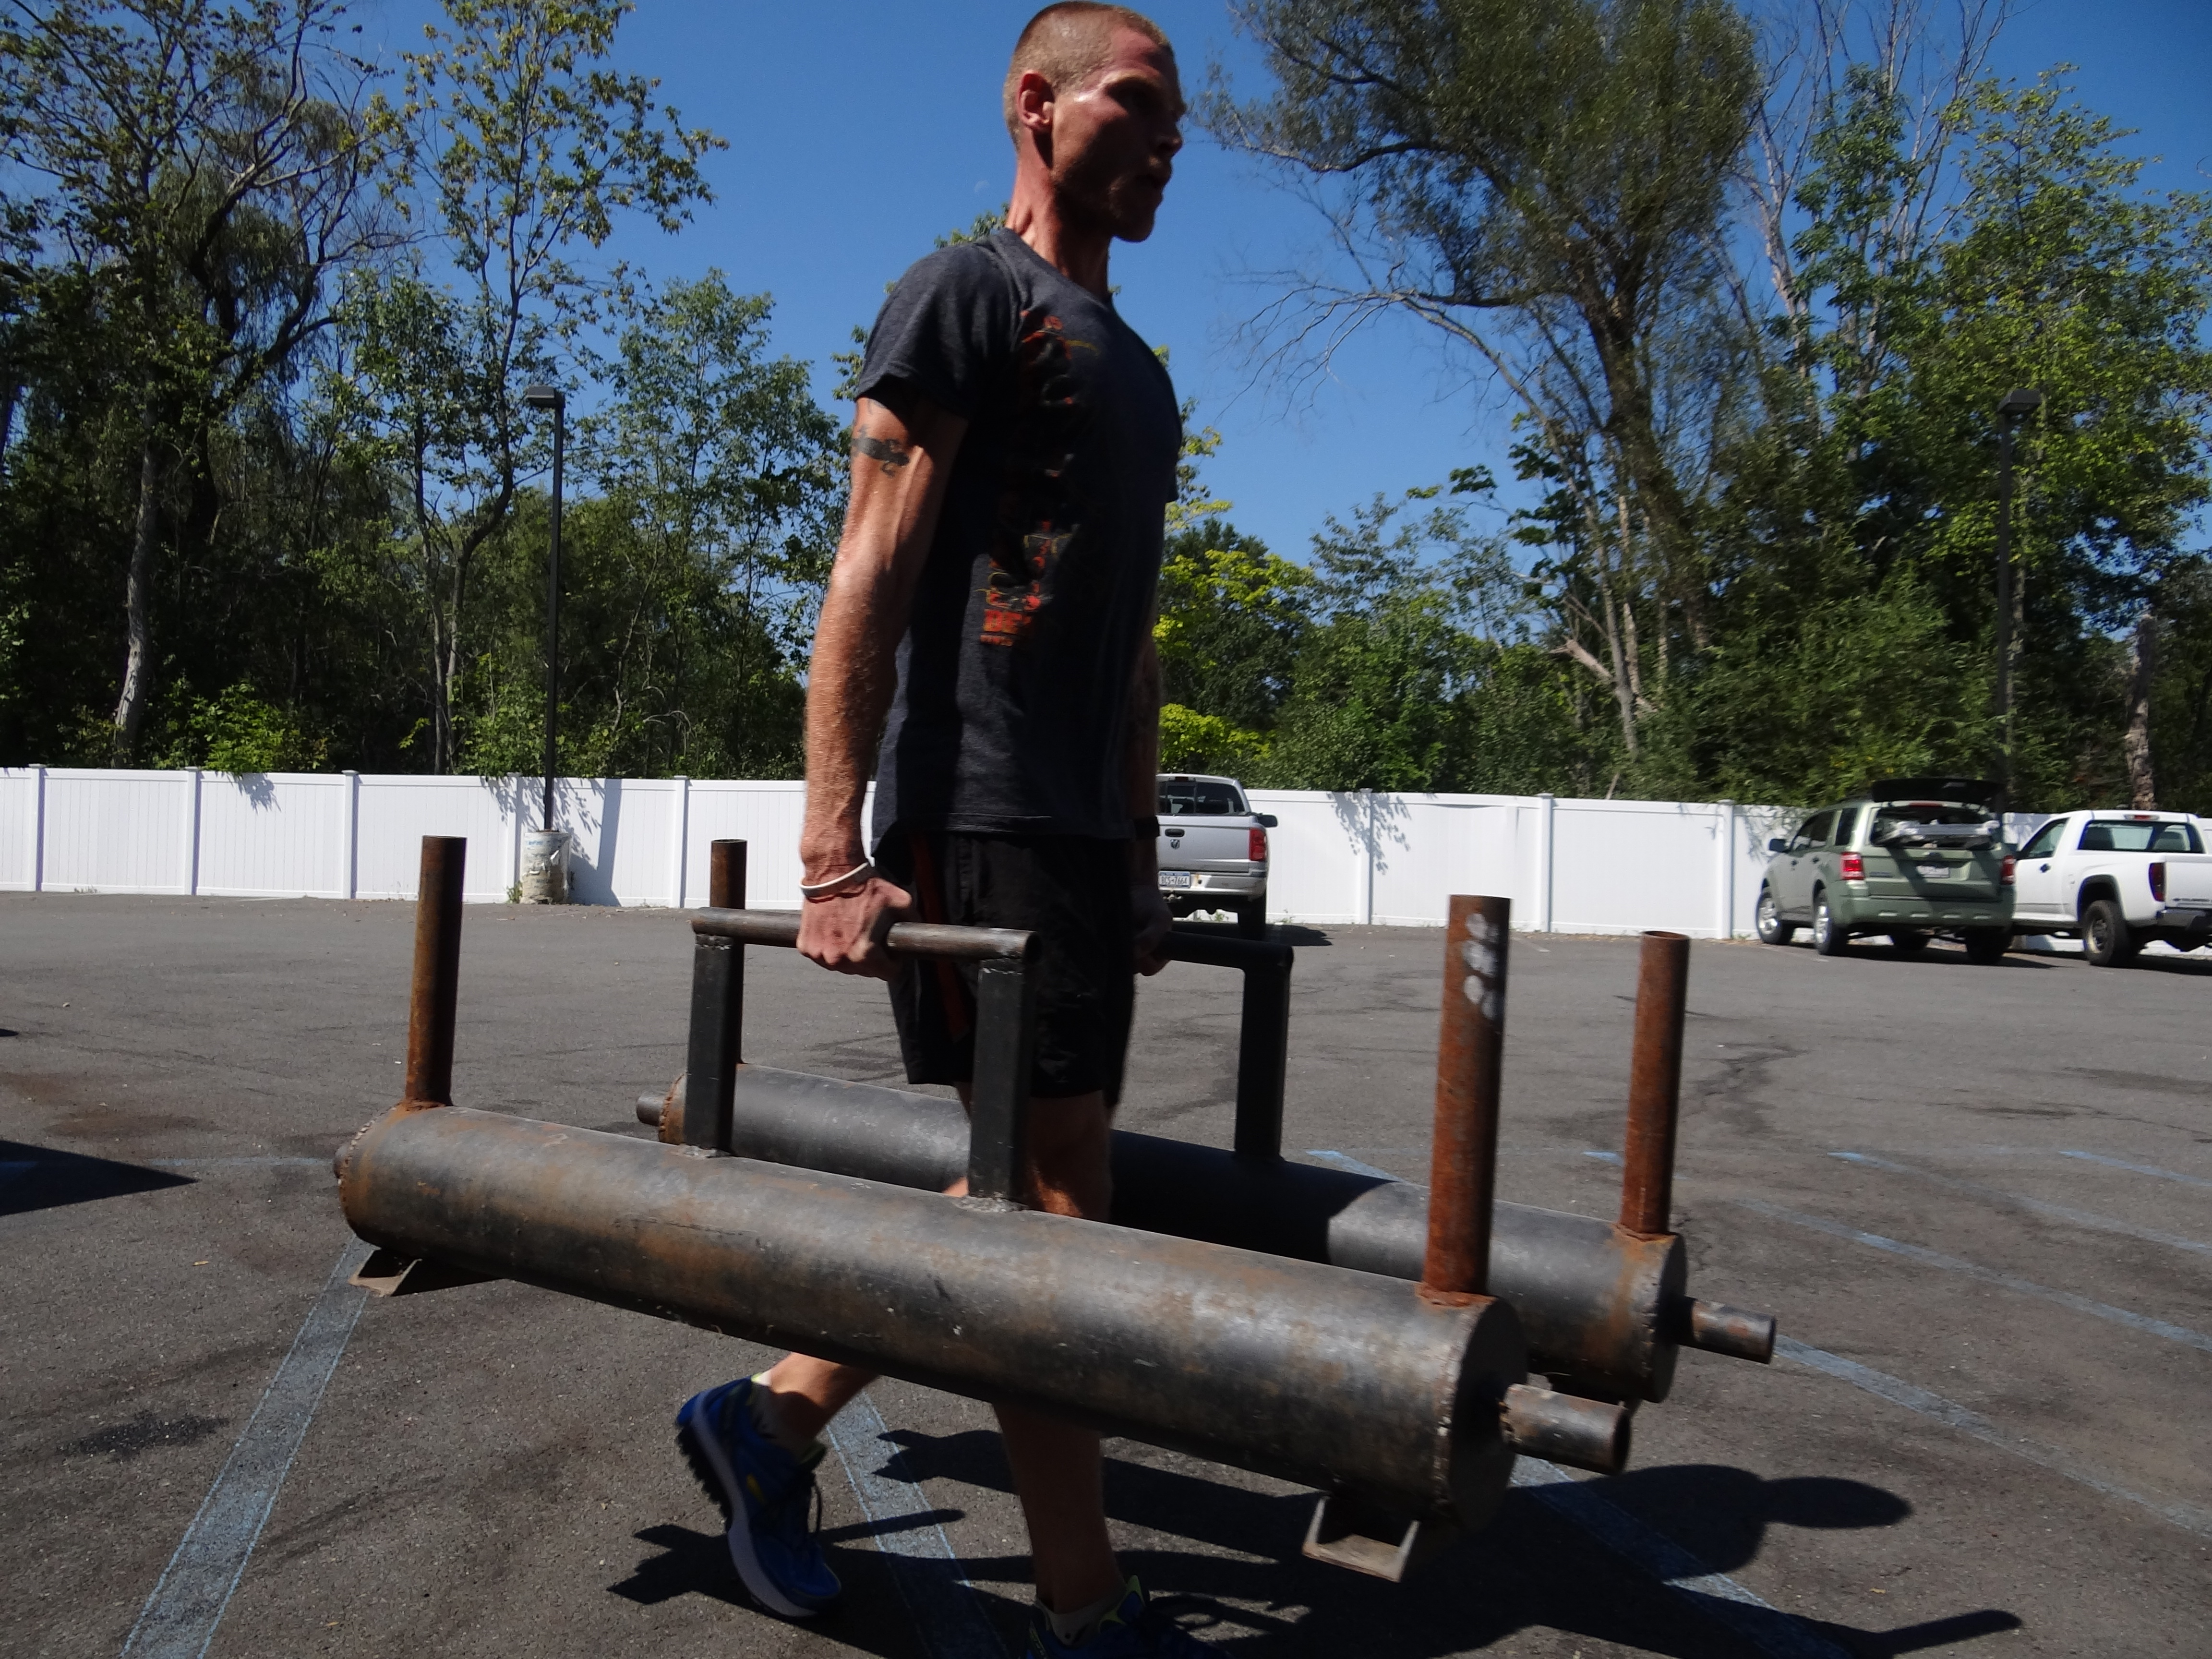 Granite Barbell gym strength training Strongman Strongwoman Orange County NY Grand opening